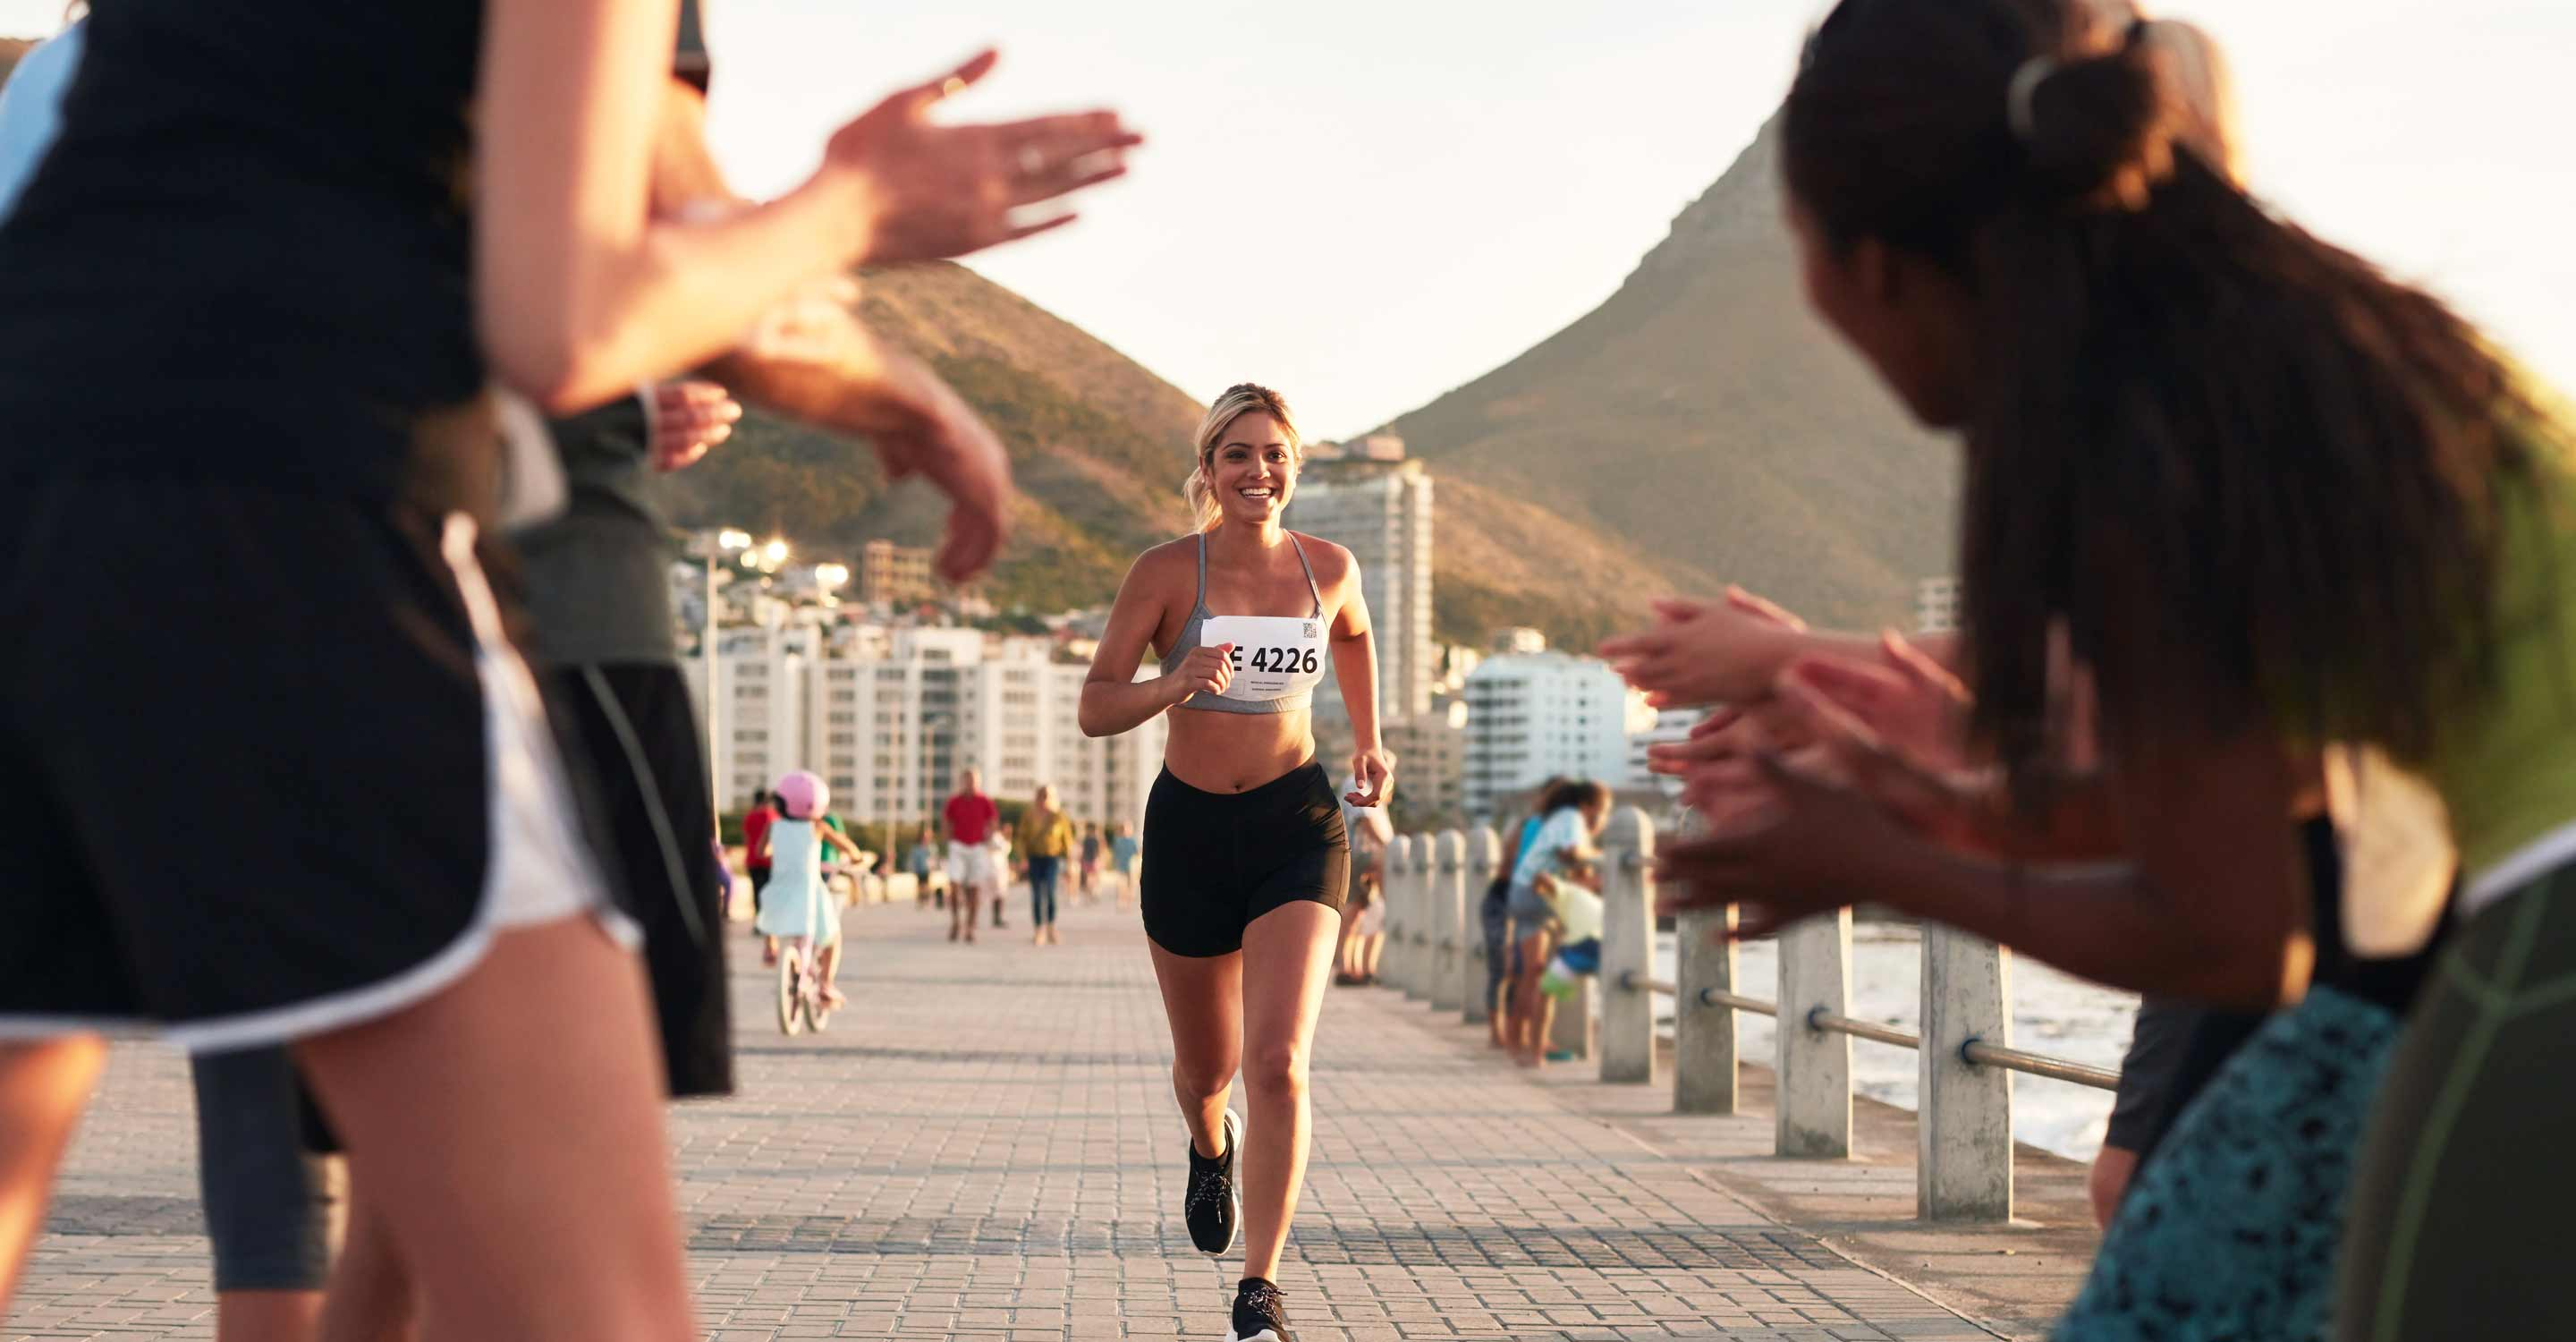 Photo of woman jogger racing to the finish line.